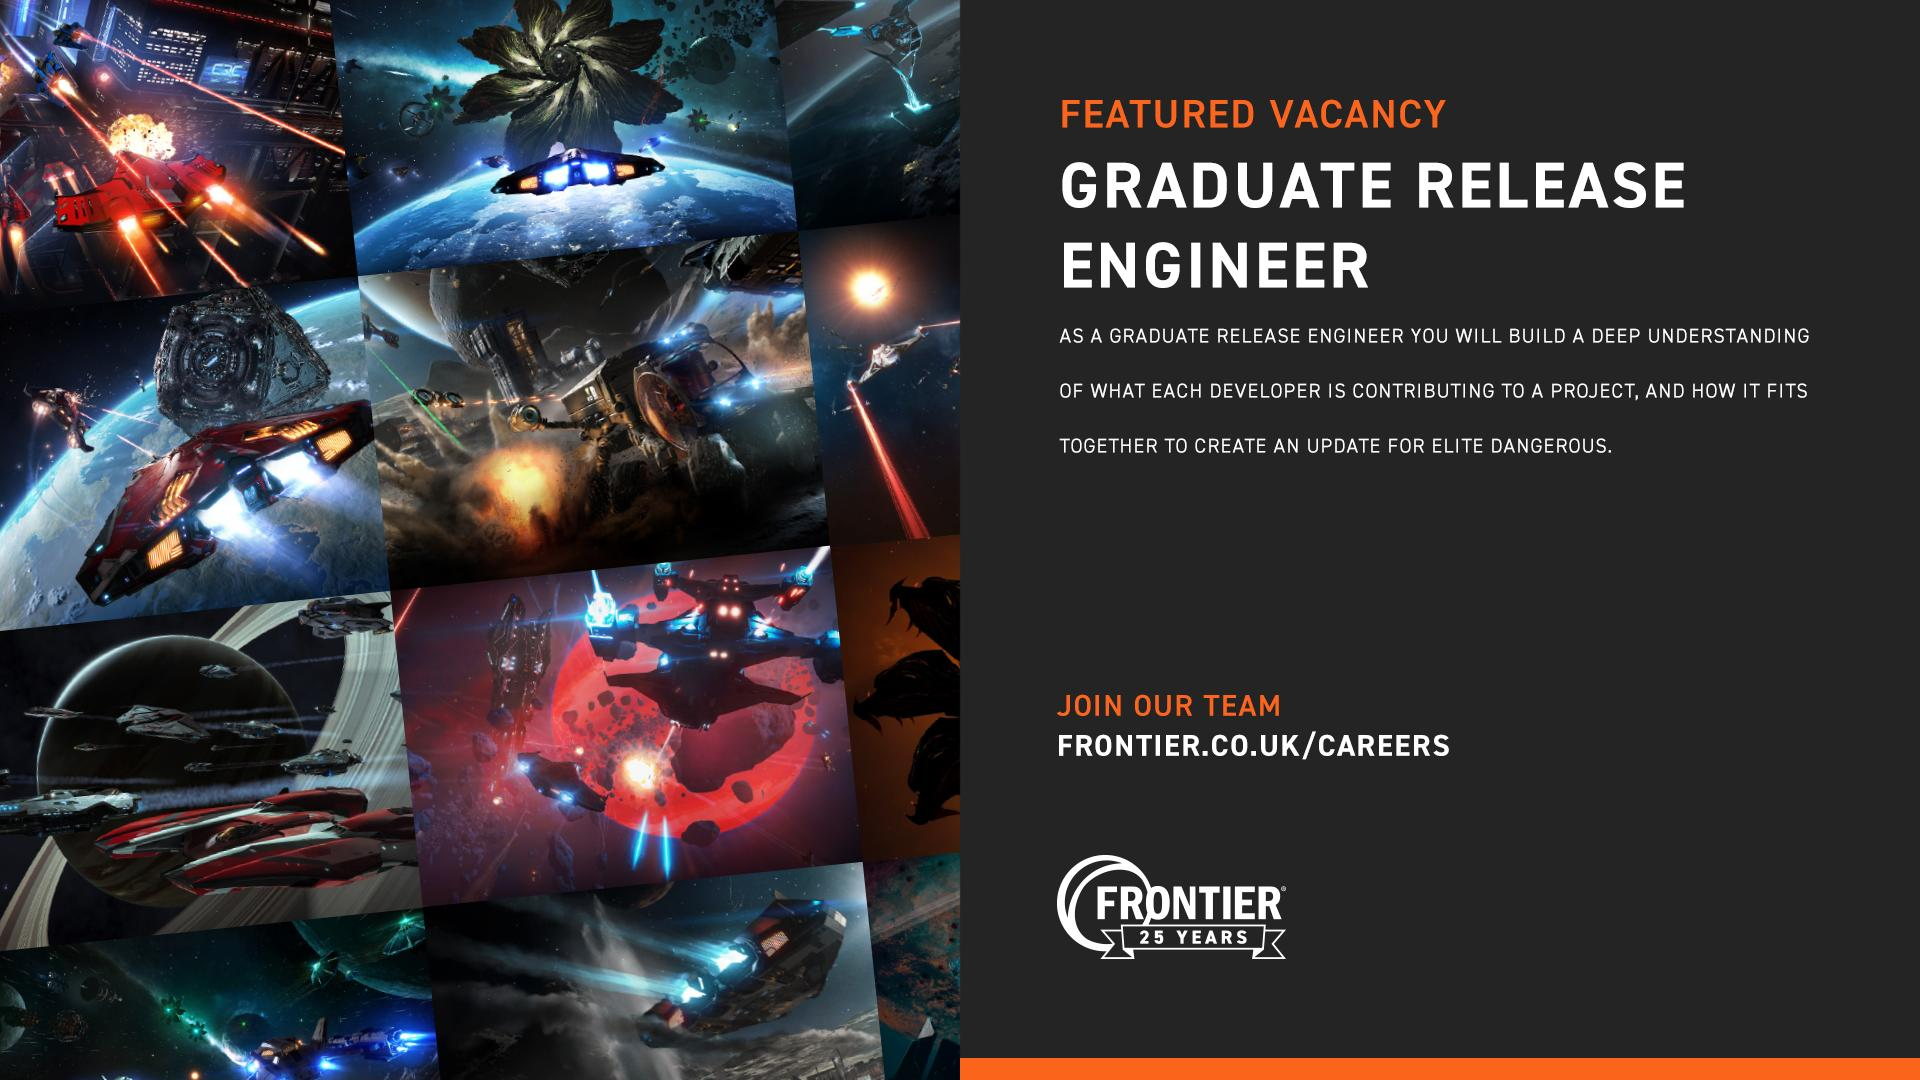 Frontier On Twitter Are You Looking For Your First Role In The Games Industry Come And Join Frontier As A Graduate Release Engineer And Contribute To The Technology That Powers The Game